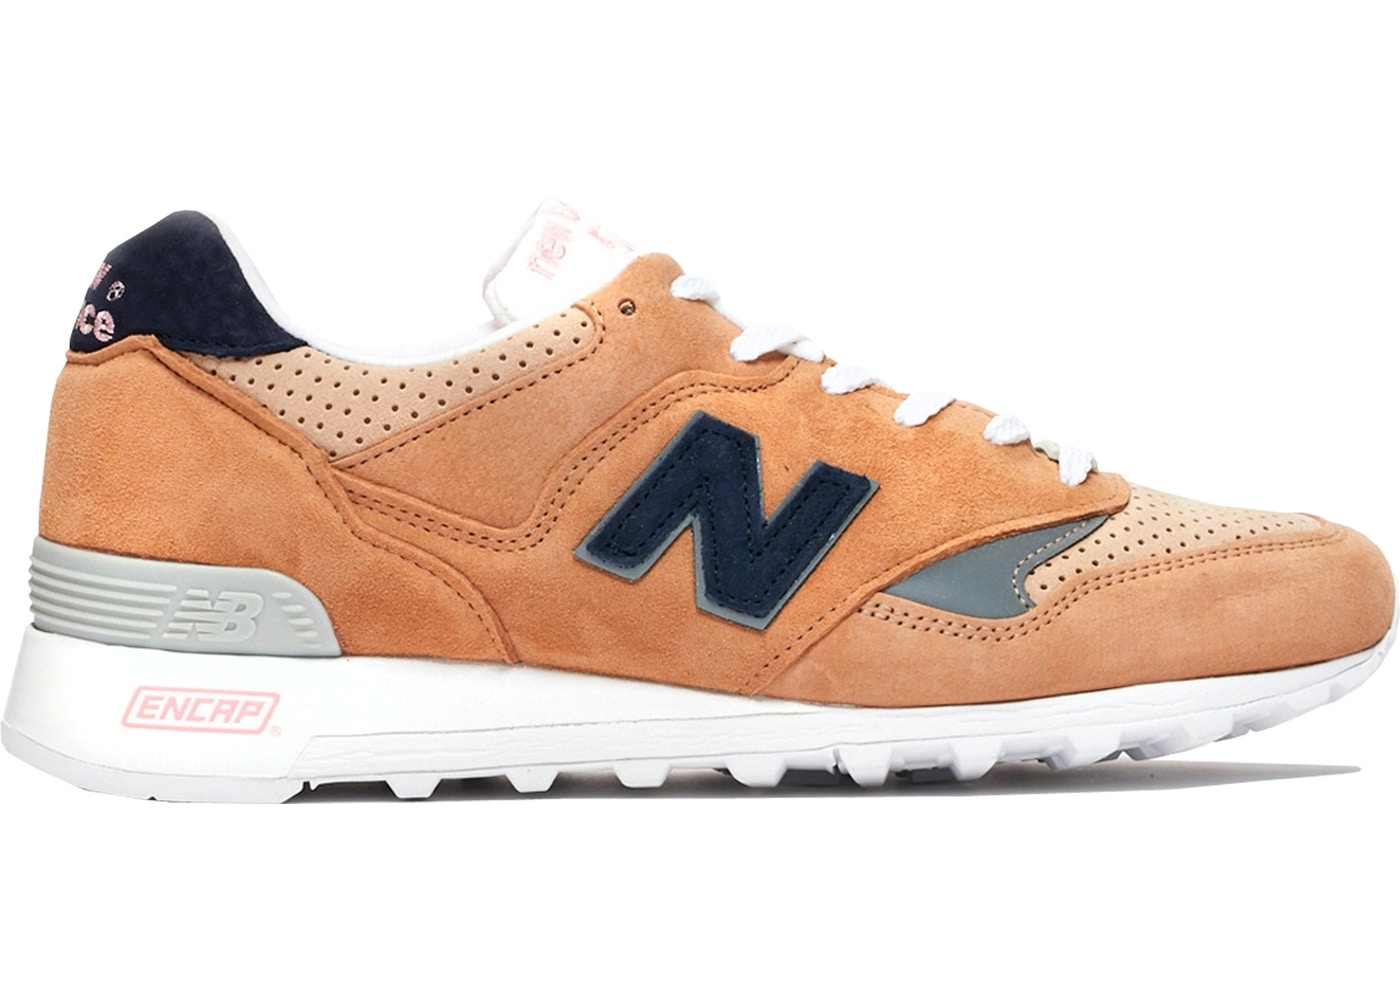 online retailer b7208 351df New Balance Footwear - Buy Deadstock Sneakers